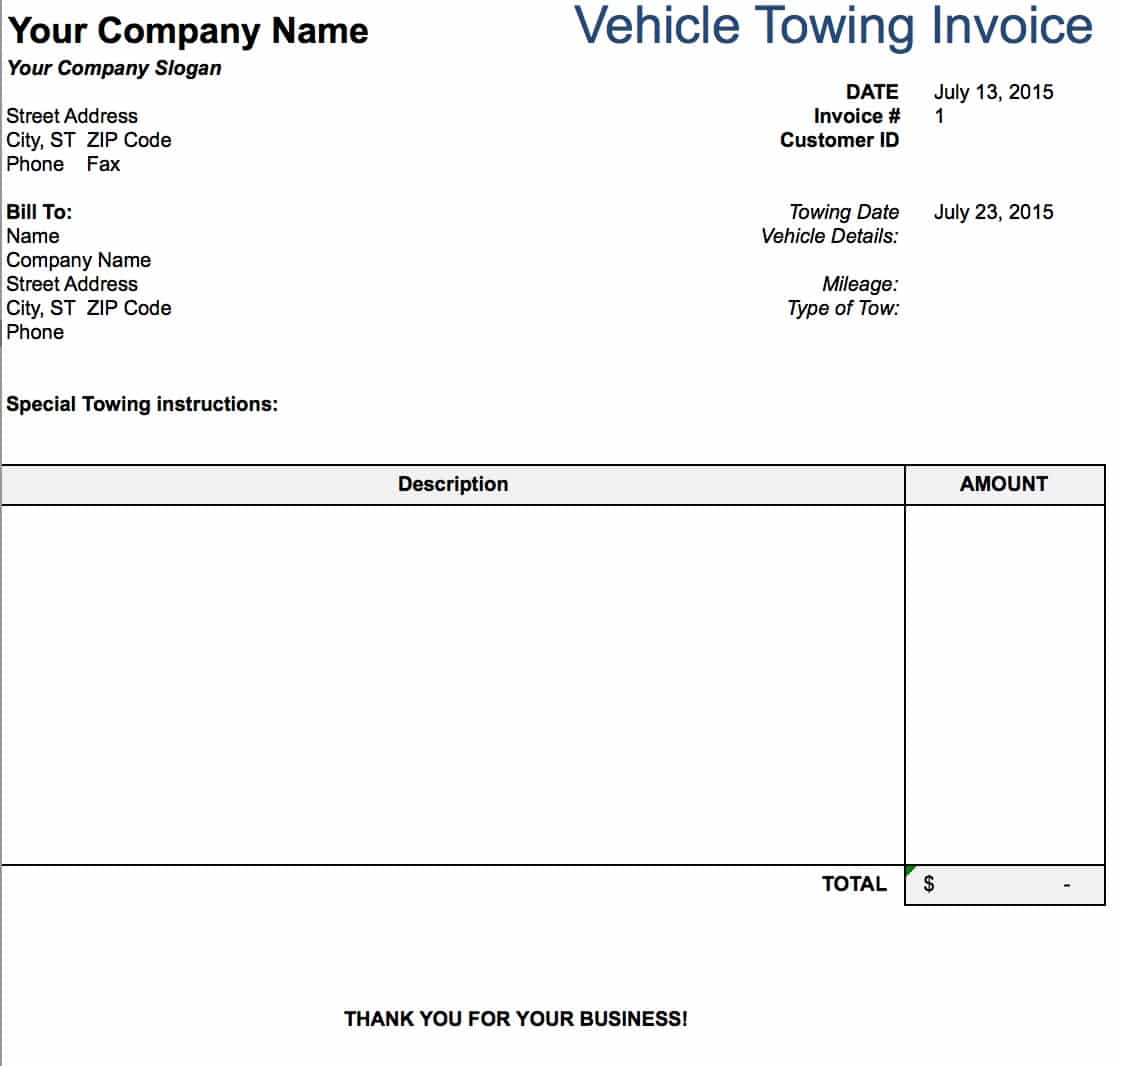 Free Tow Service Invoice Template Excel PDF Word Doc - Free microsoft word invoice template for service business